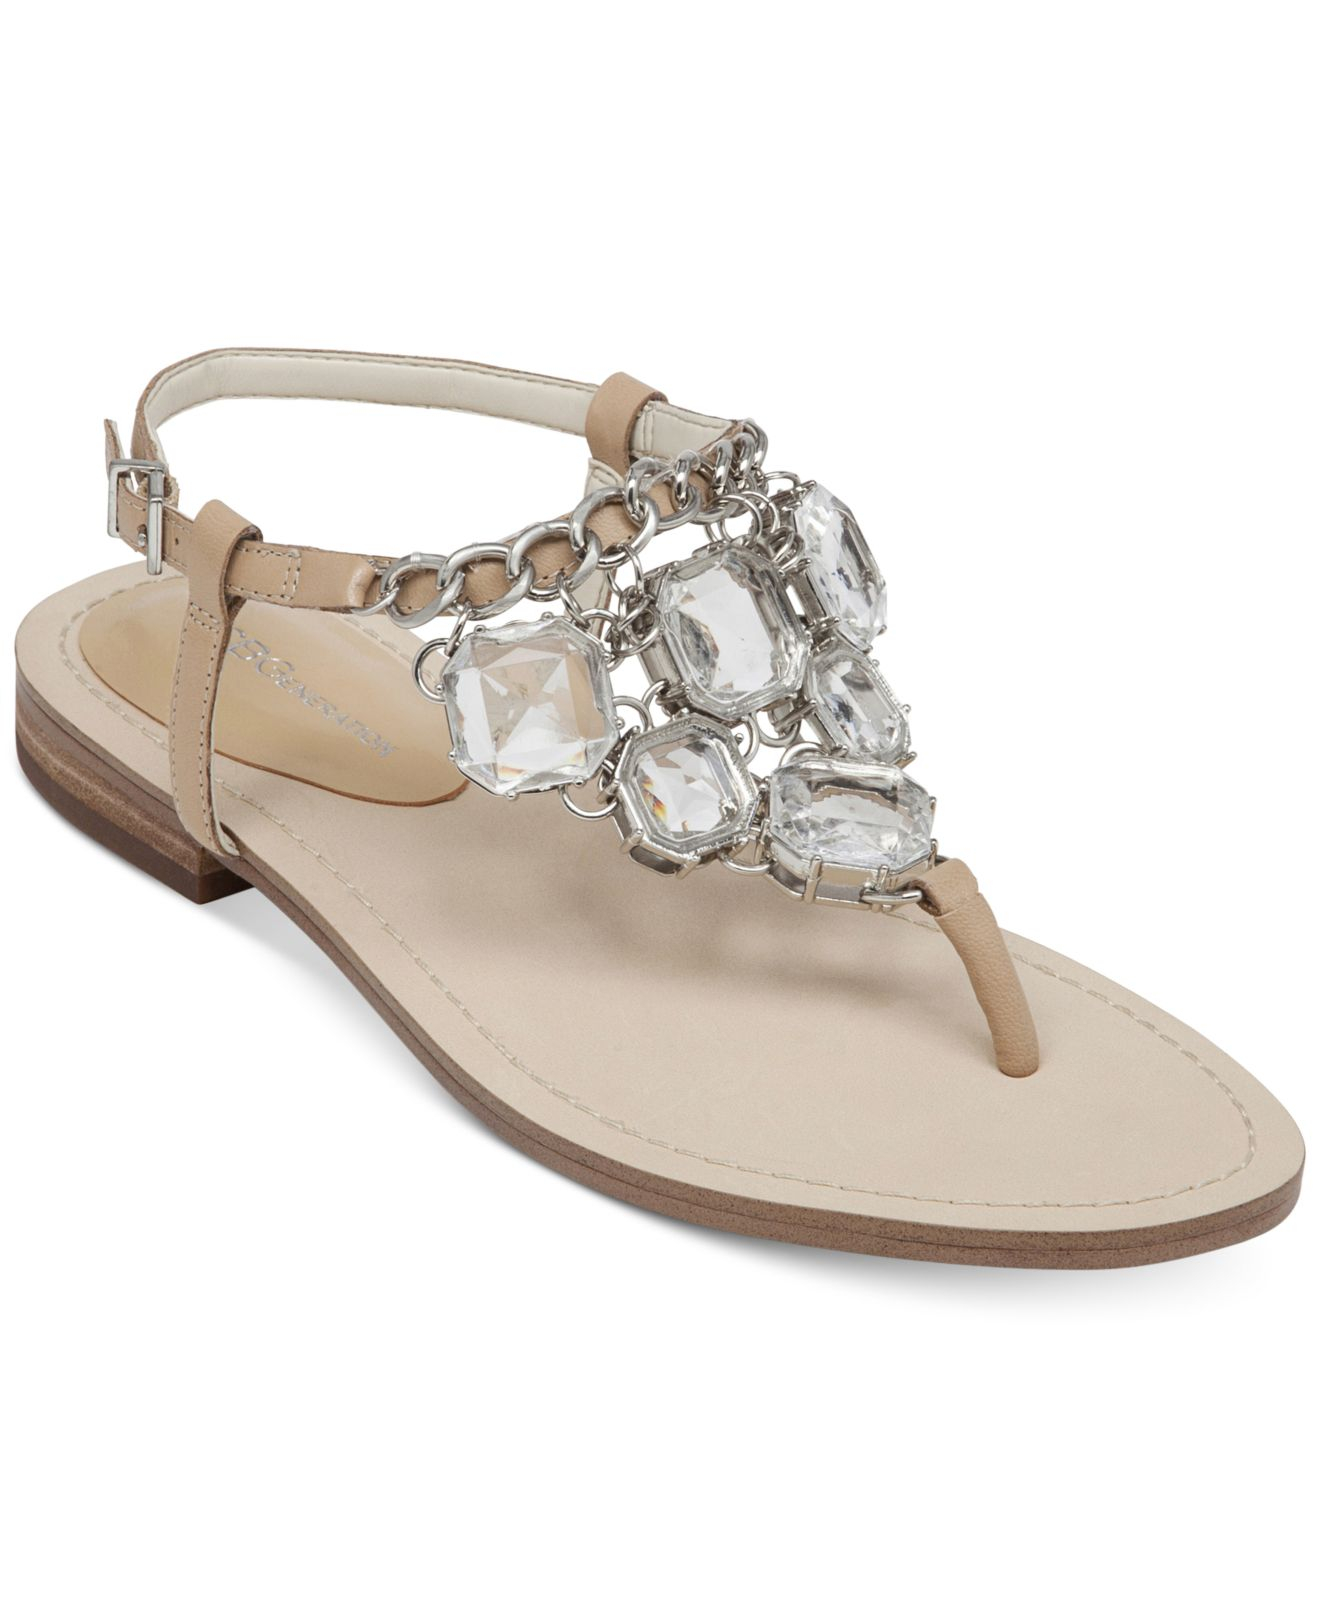 f316ee0235298c Lyst - BCBGeneration Baila Bling Flat Sandals in Natural